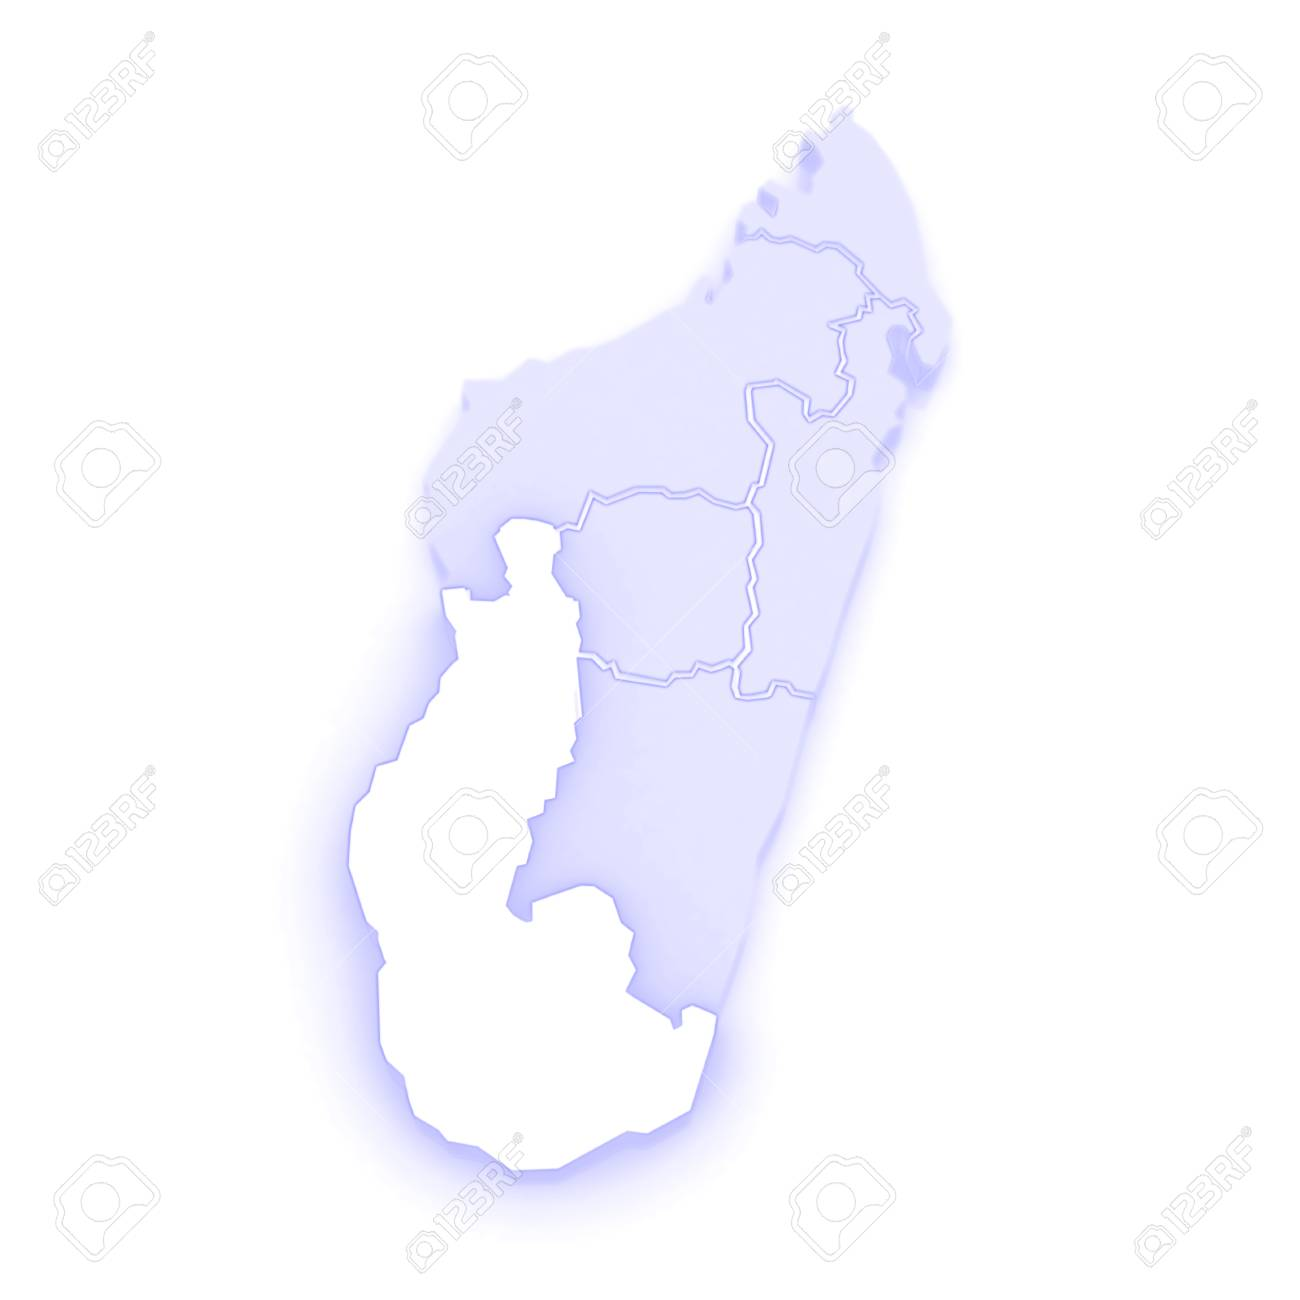 Map Of Toliara. Madagascar. 3d Stock Photo, Picture And Royalty Free ...